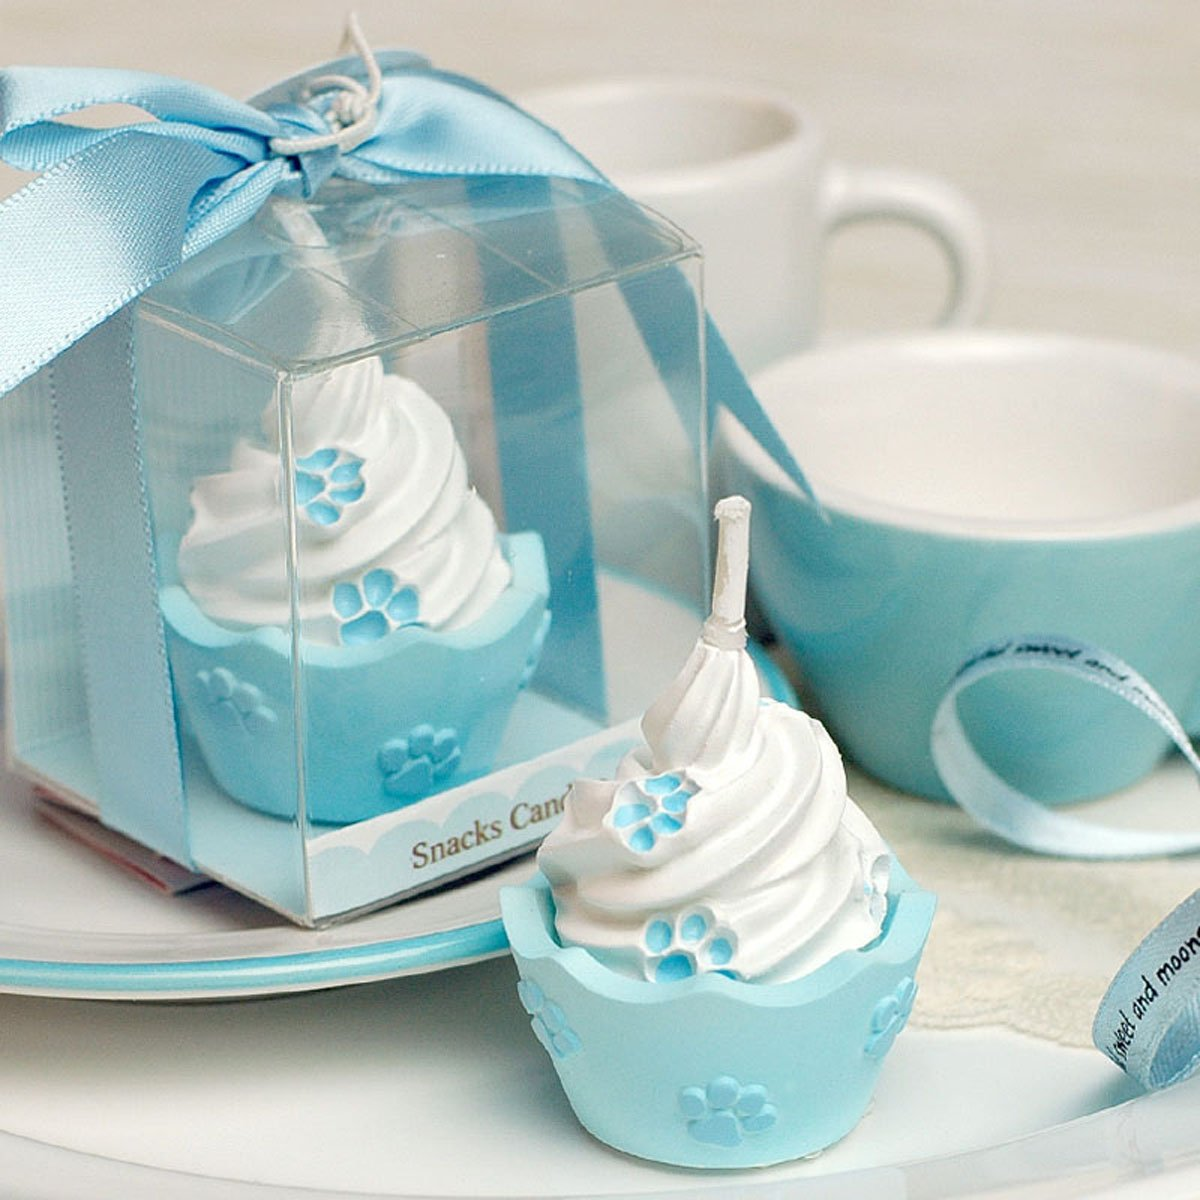 Cartoon Summer Ice Cream Charming Gifts Party Candles Smokeless Candles Birthday Candles for Baby Shower and Wedding Favor Keepsake Favor (5, Blue)